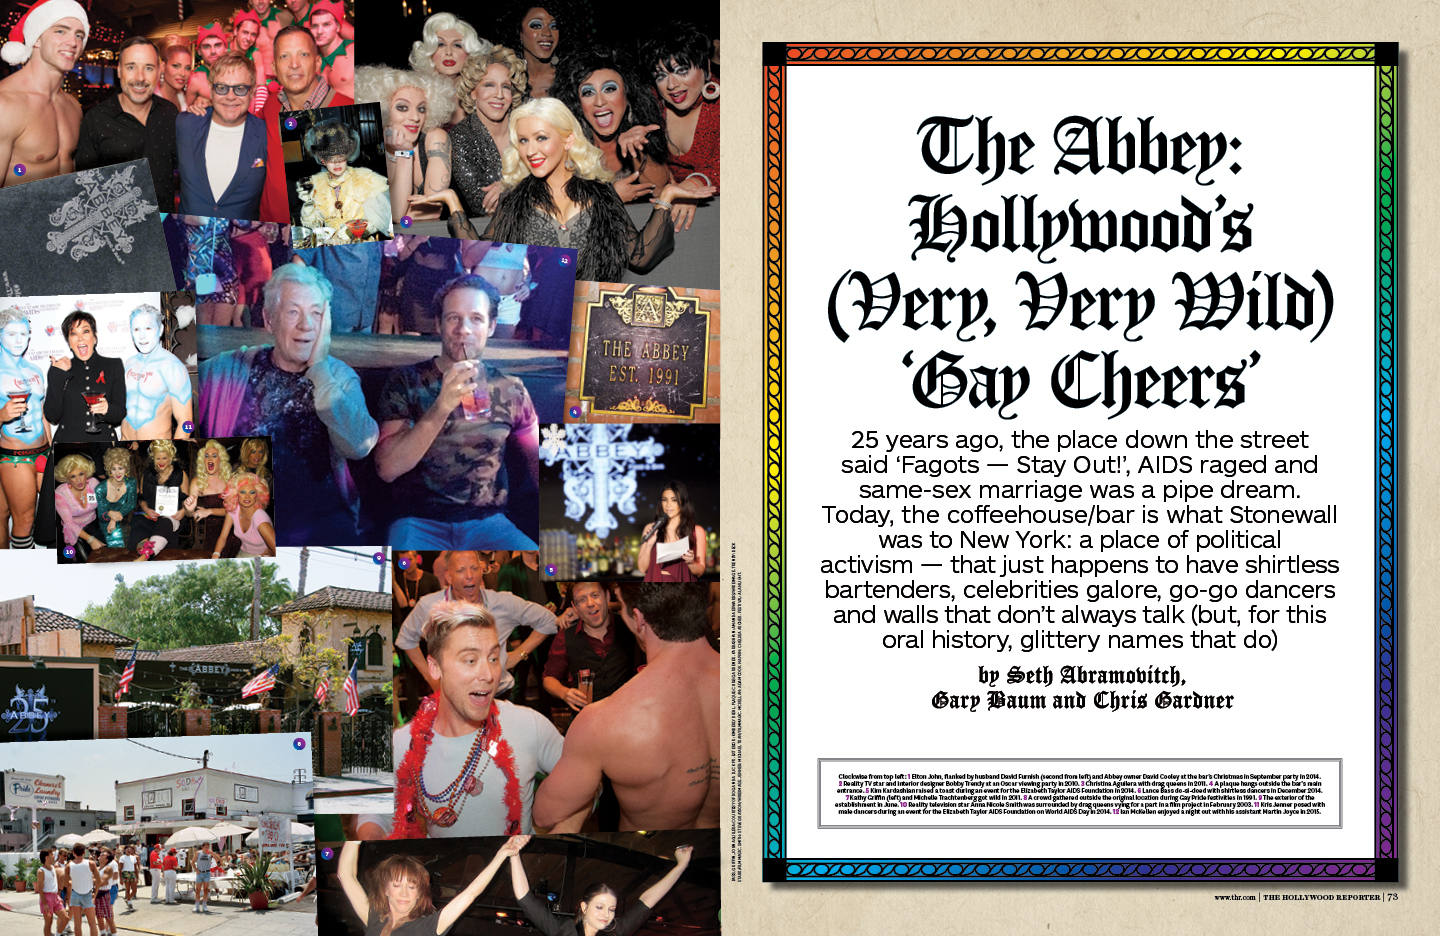 The Abbey: Hollywood's 'Gay Cheers' / The Hollywood Reporter / 6.17.16 / kelsey stefanson / art direction + graphic design / yeskelsey.com